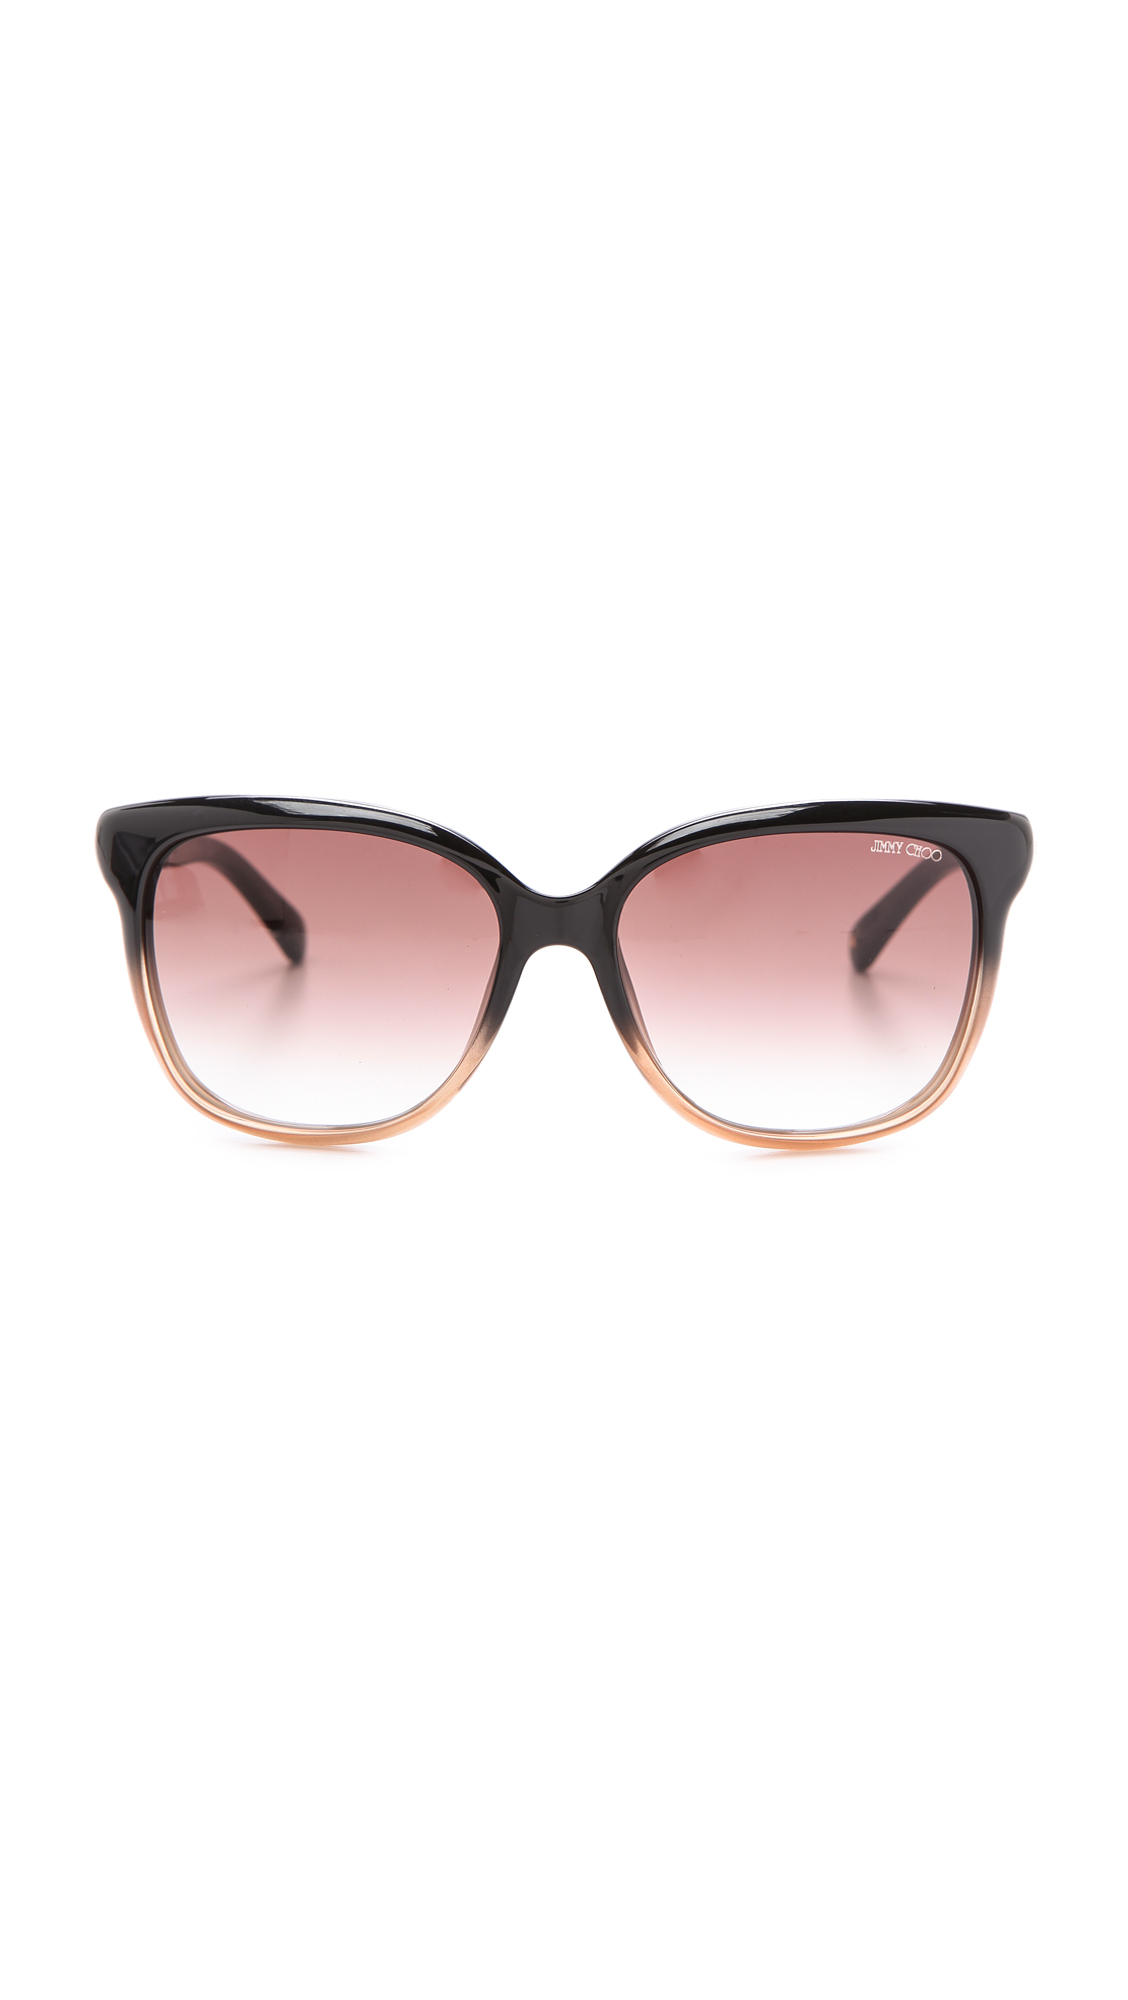 http://www.popularclothingstyles.com/category/ray-ban